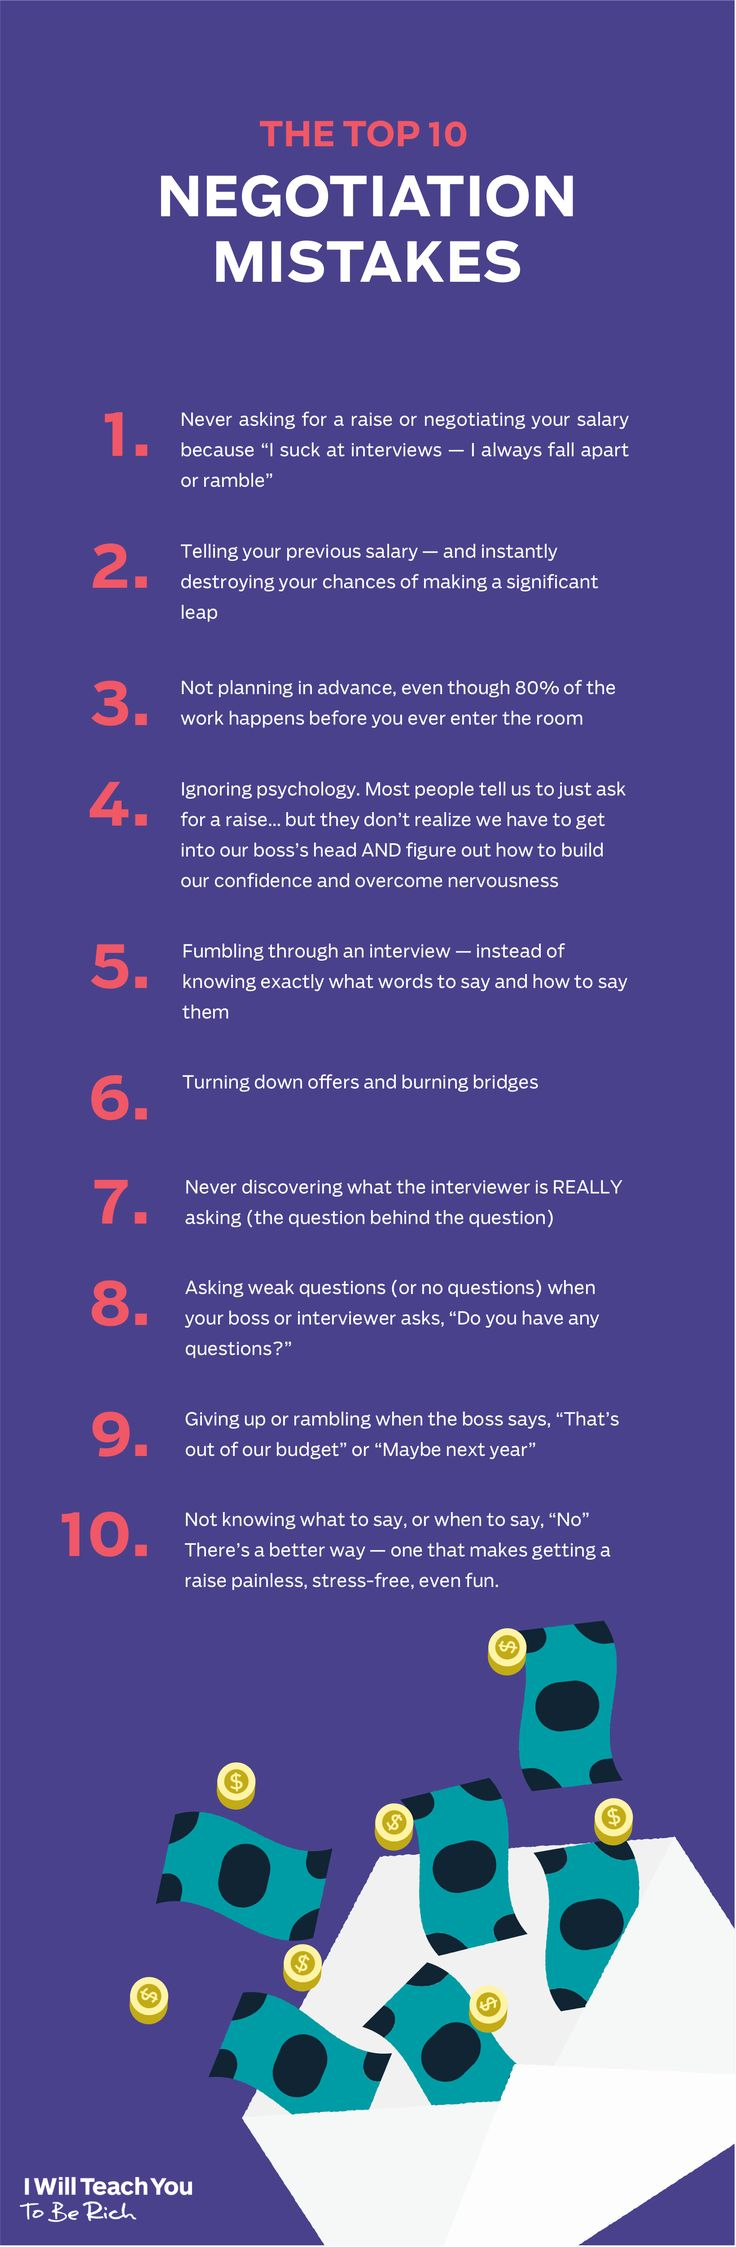 The Top 10 Negotiation Miskates (from The Ultimate Guide To Asking For A  Raise…